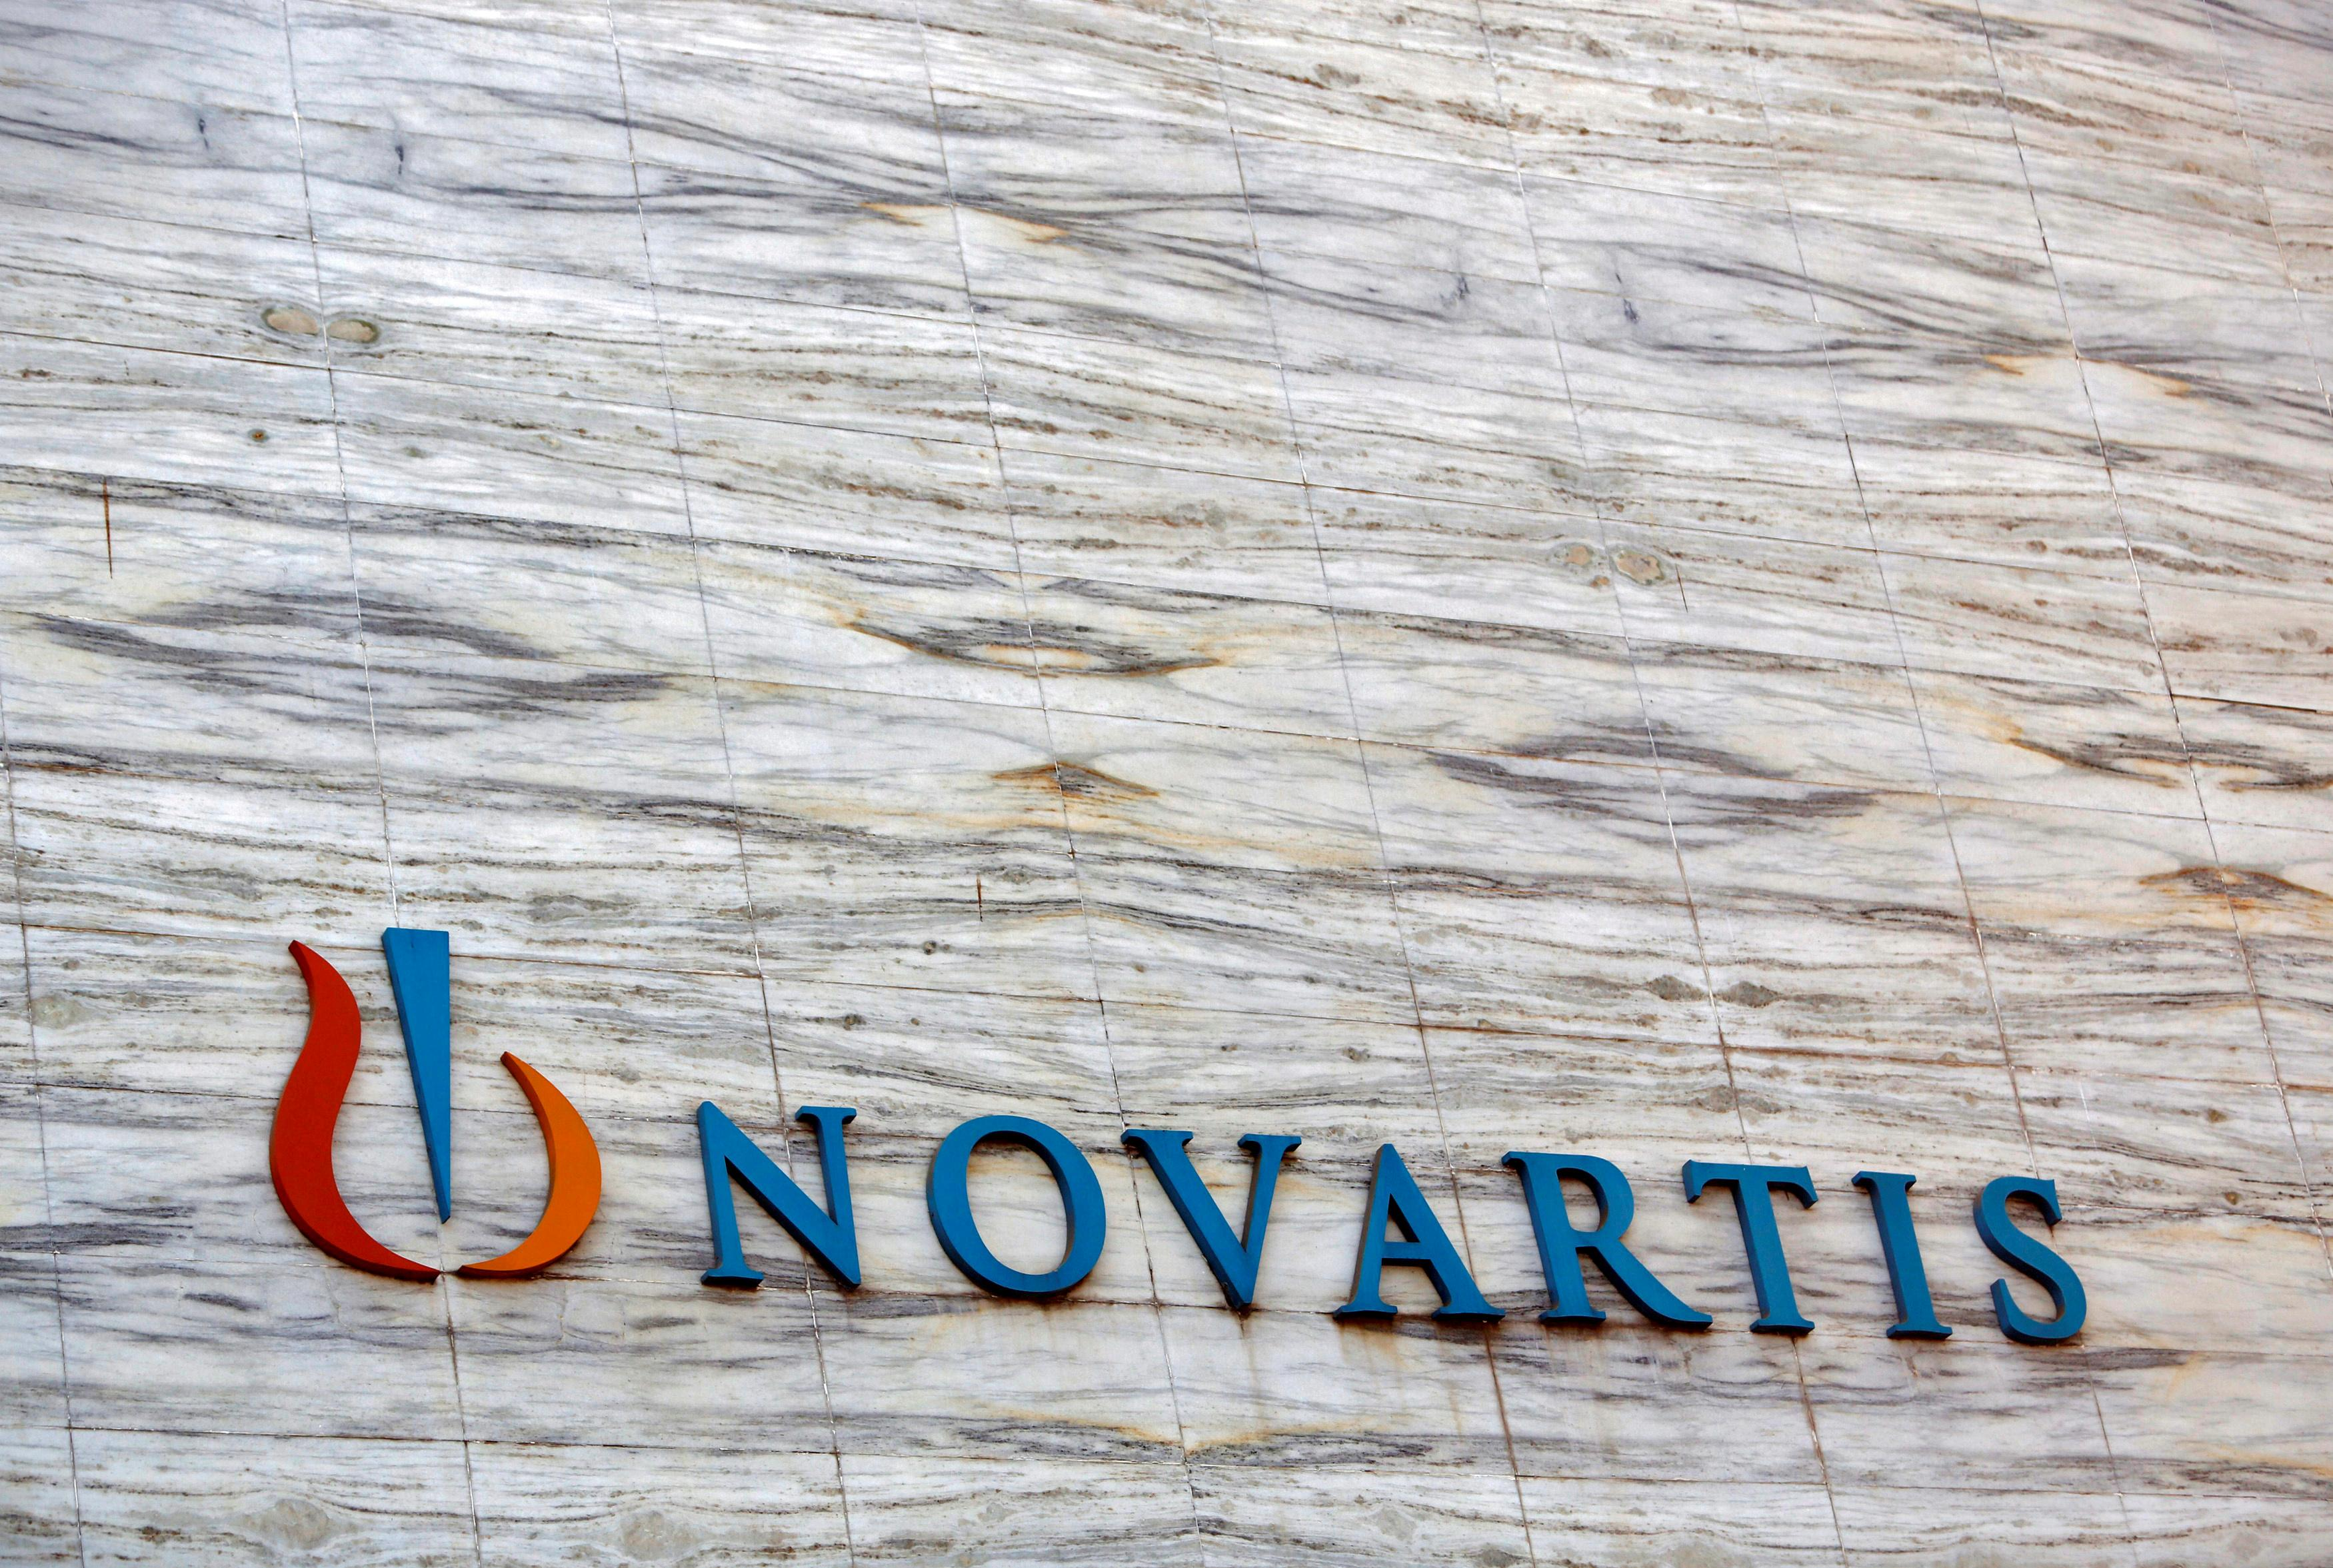 Novartis appoints Susanne Schaffert to lead oncology business